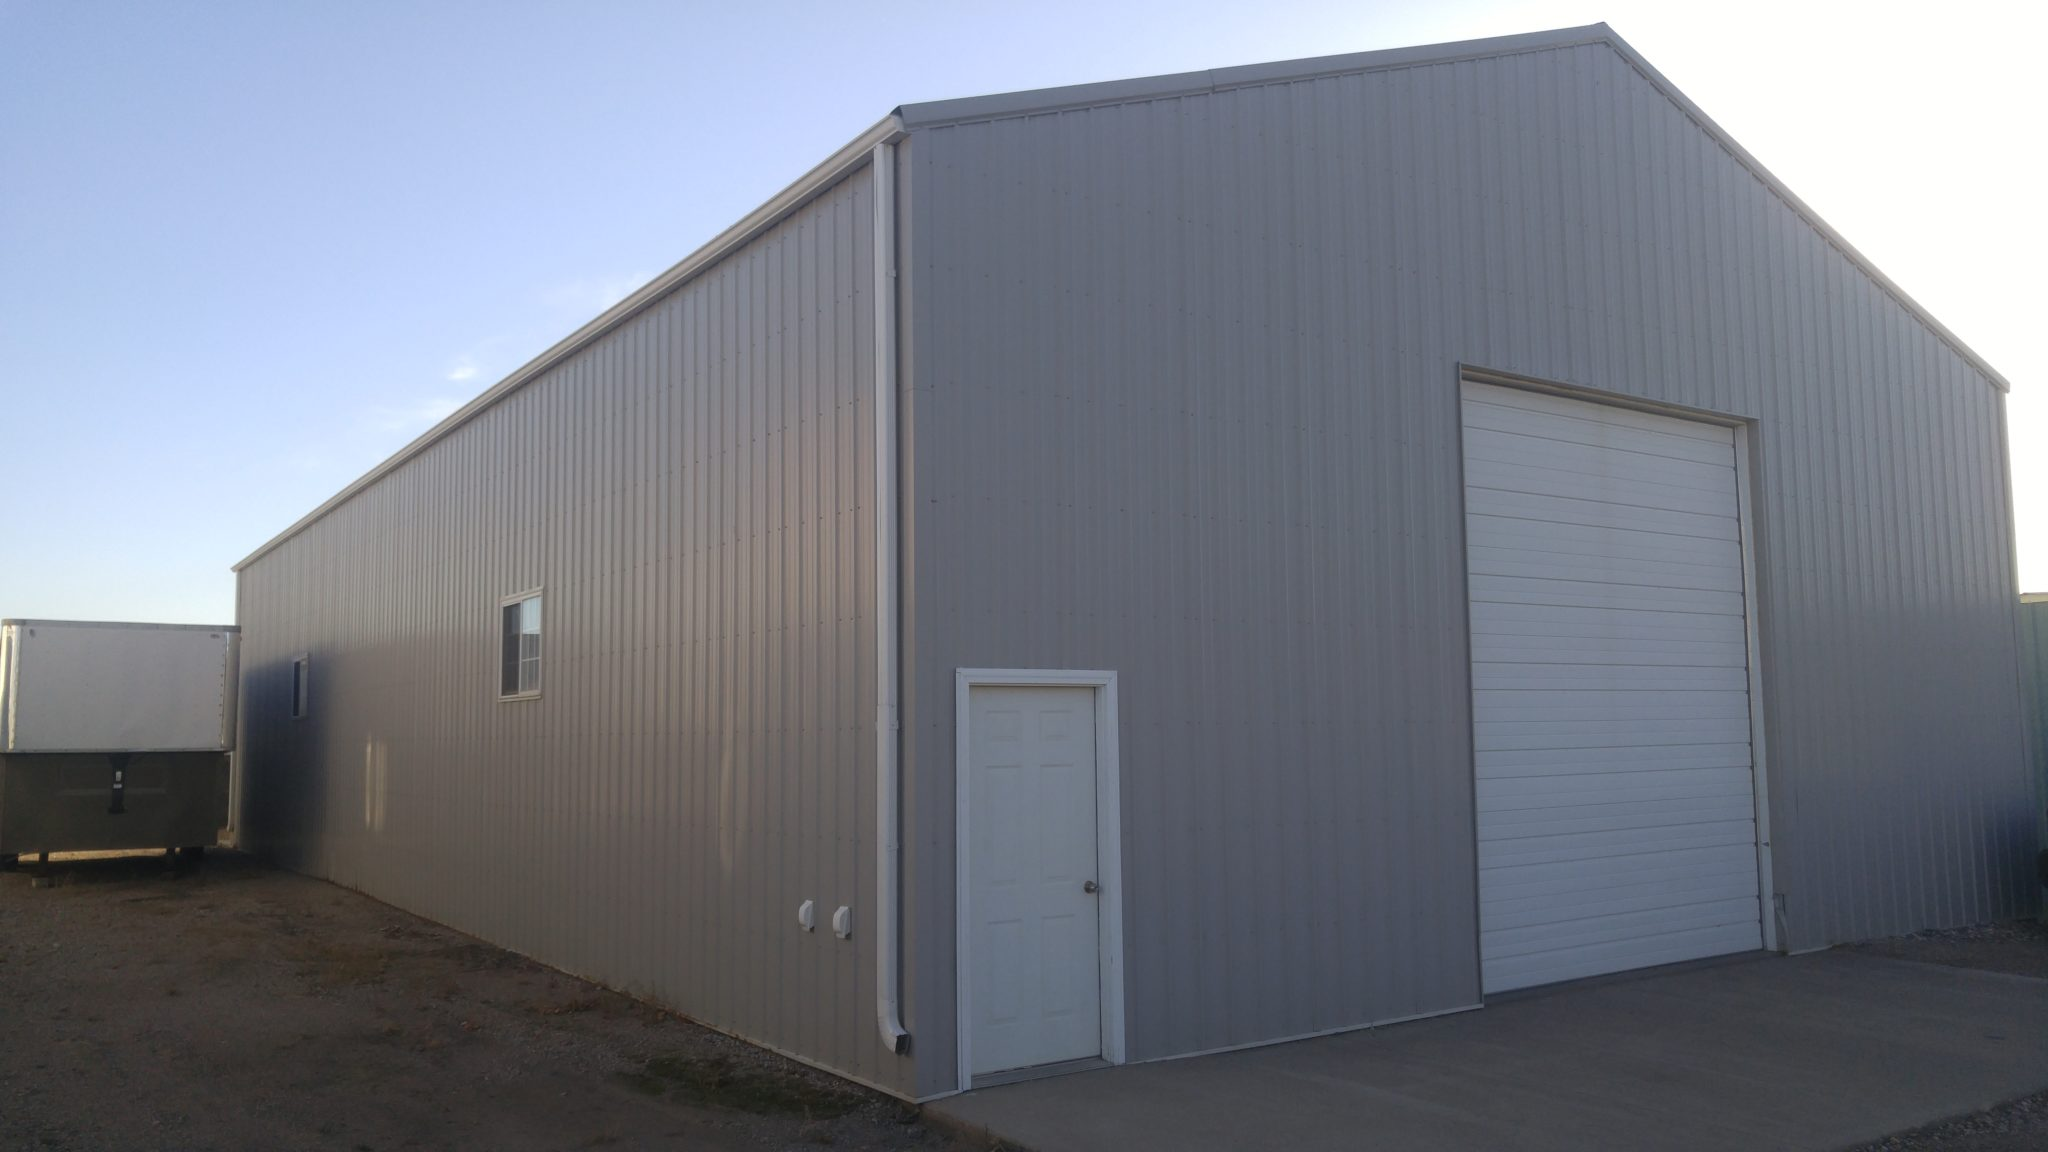 Commercial Investment Property For Sale in Jamestown, ND 1307 12th Ave NE - Jamestown, ND - Blue Jay Building